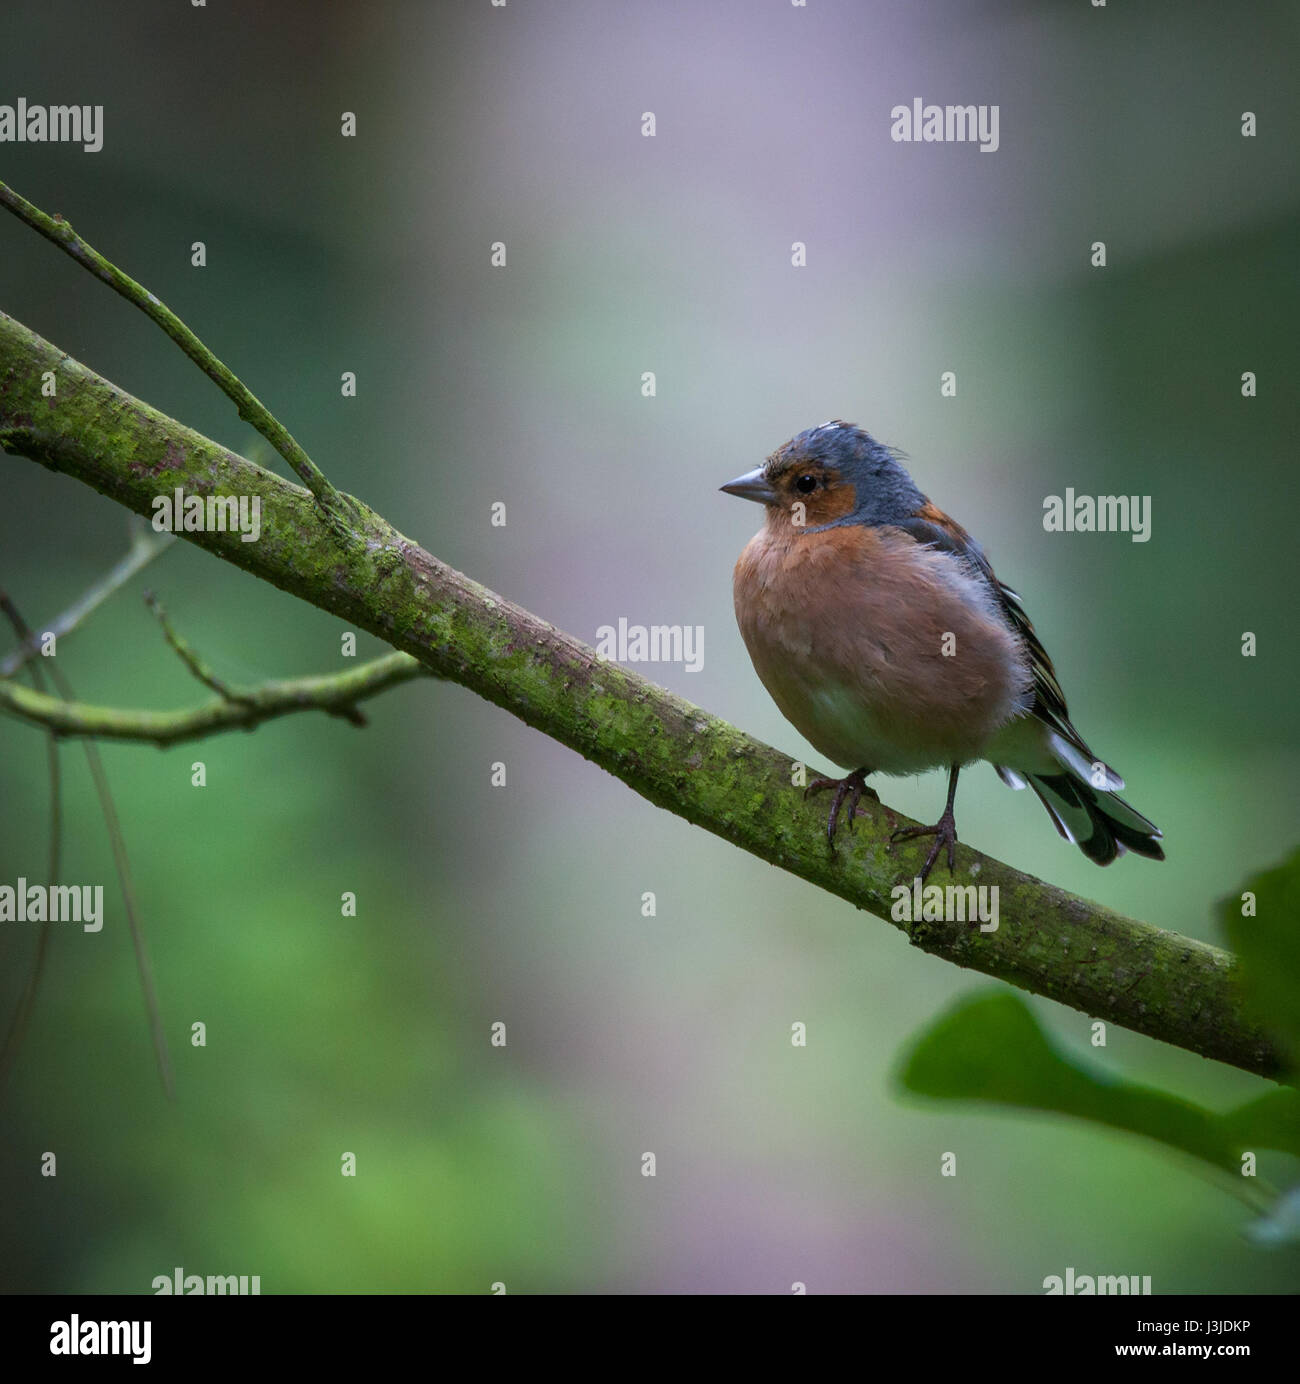 Chaffinch perched in a tree - Stock Image